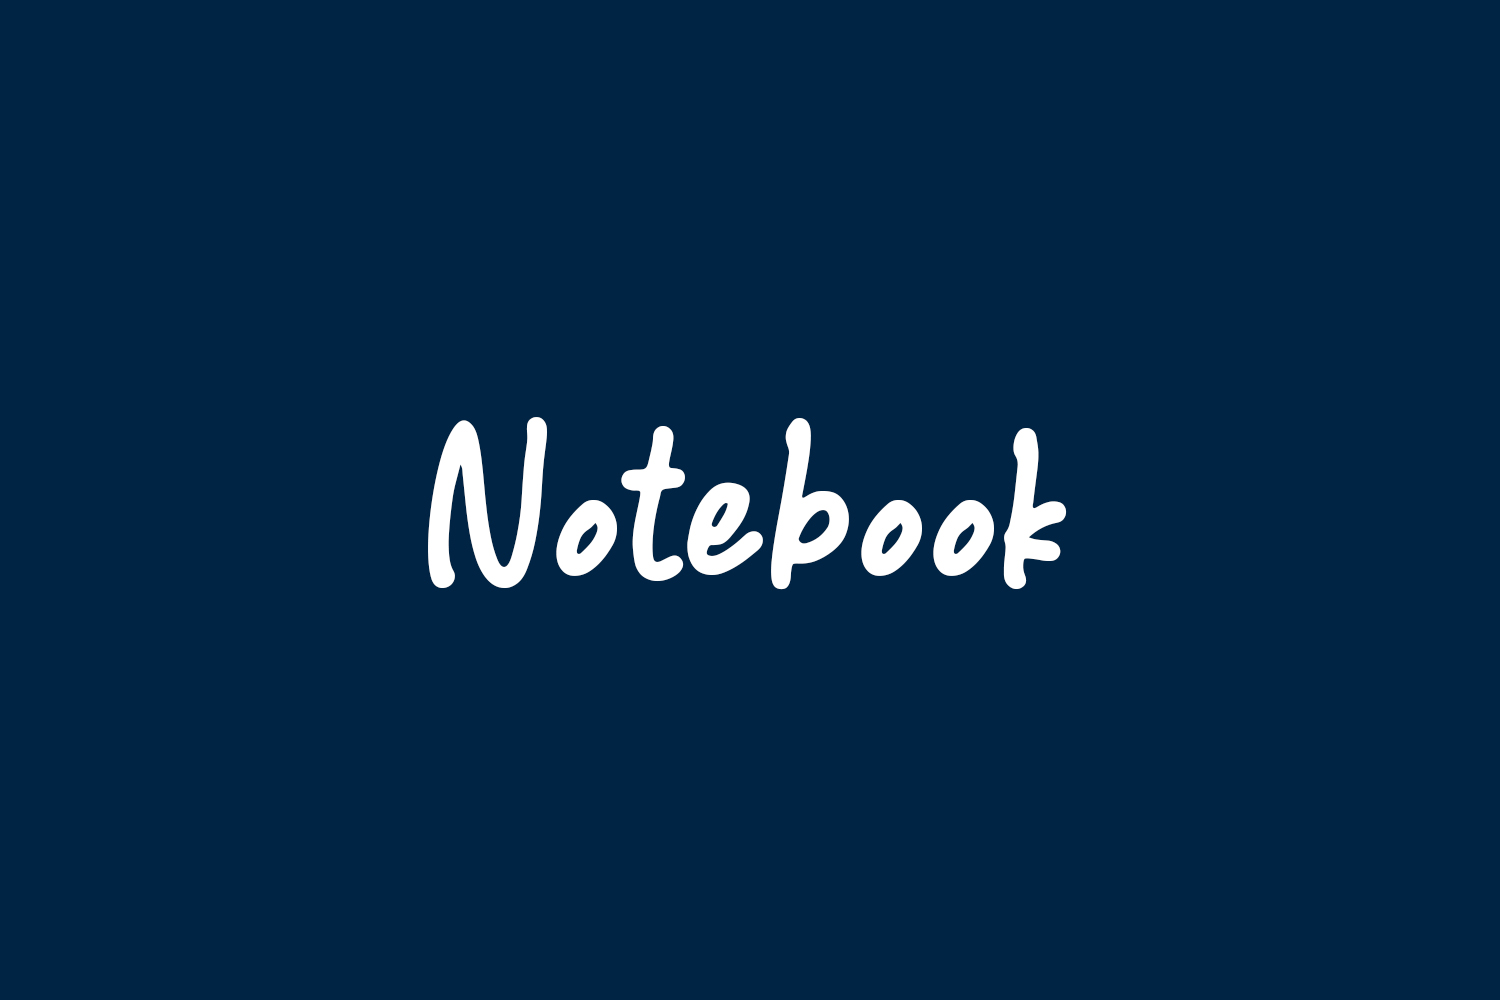 Notebook Free Font